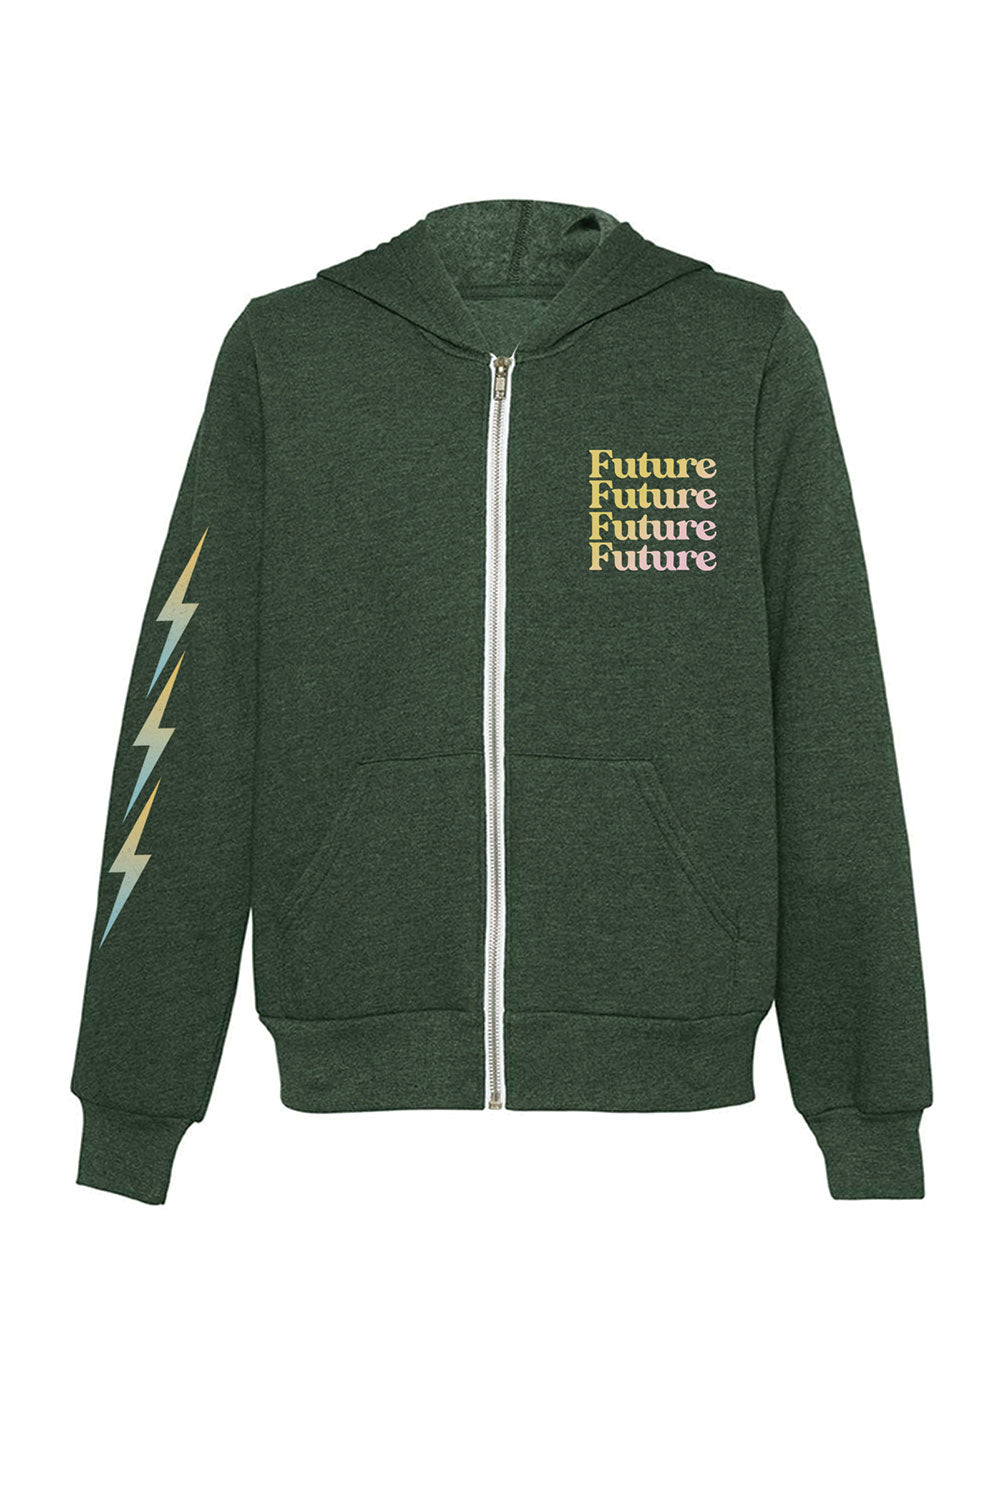 Sponge Fleece Future Zip Hoodie